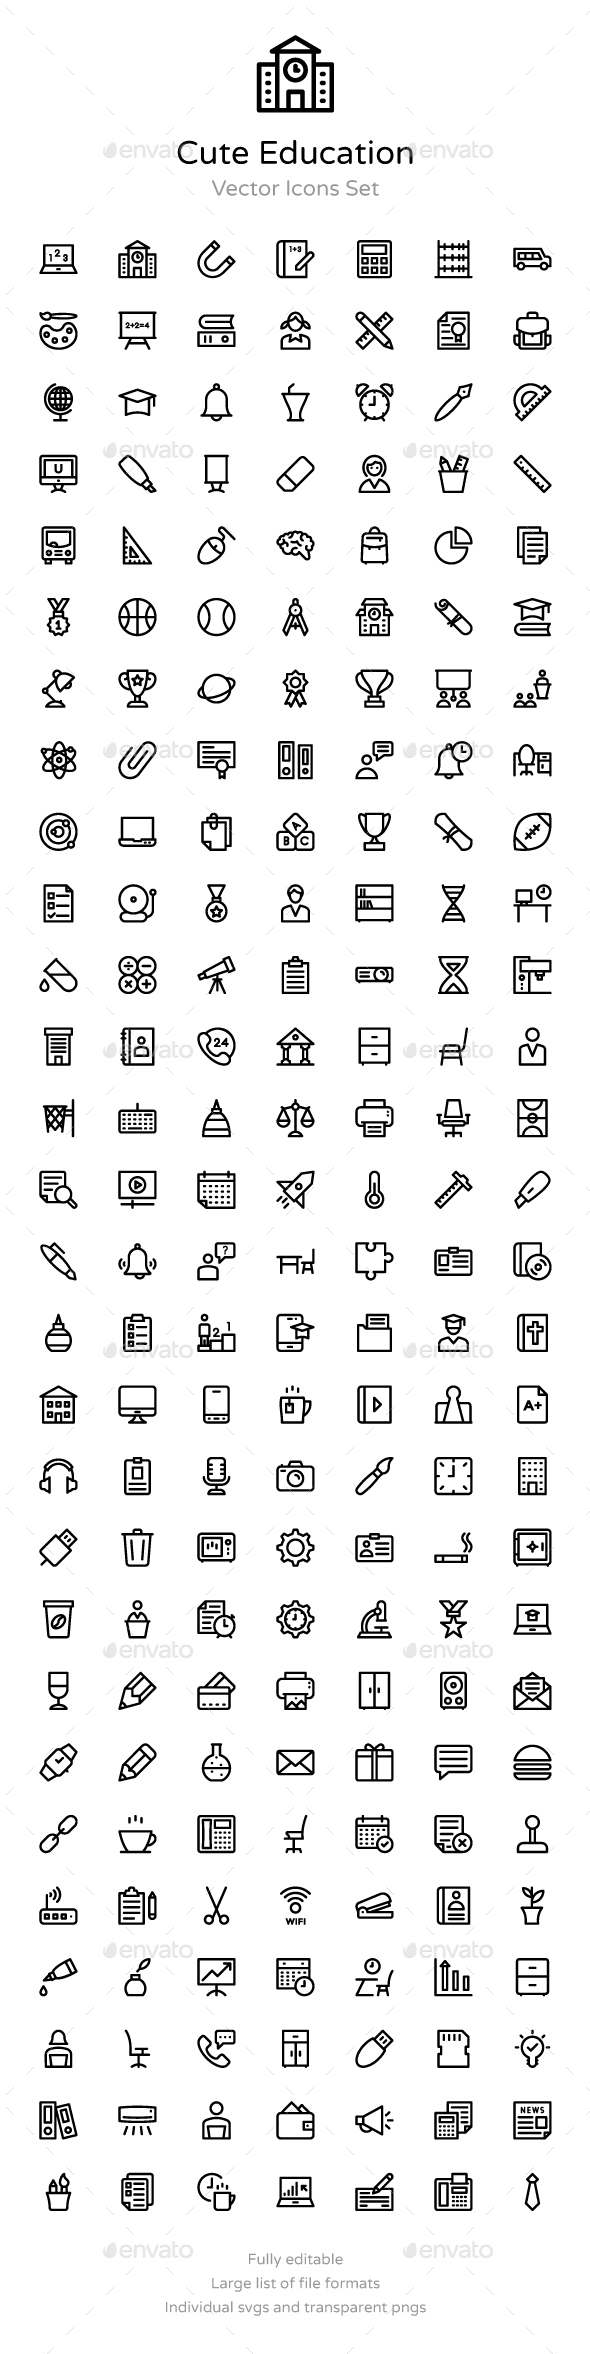 175+ Cute Education Vector Icons - Icons